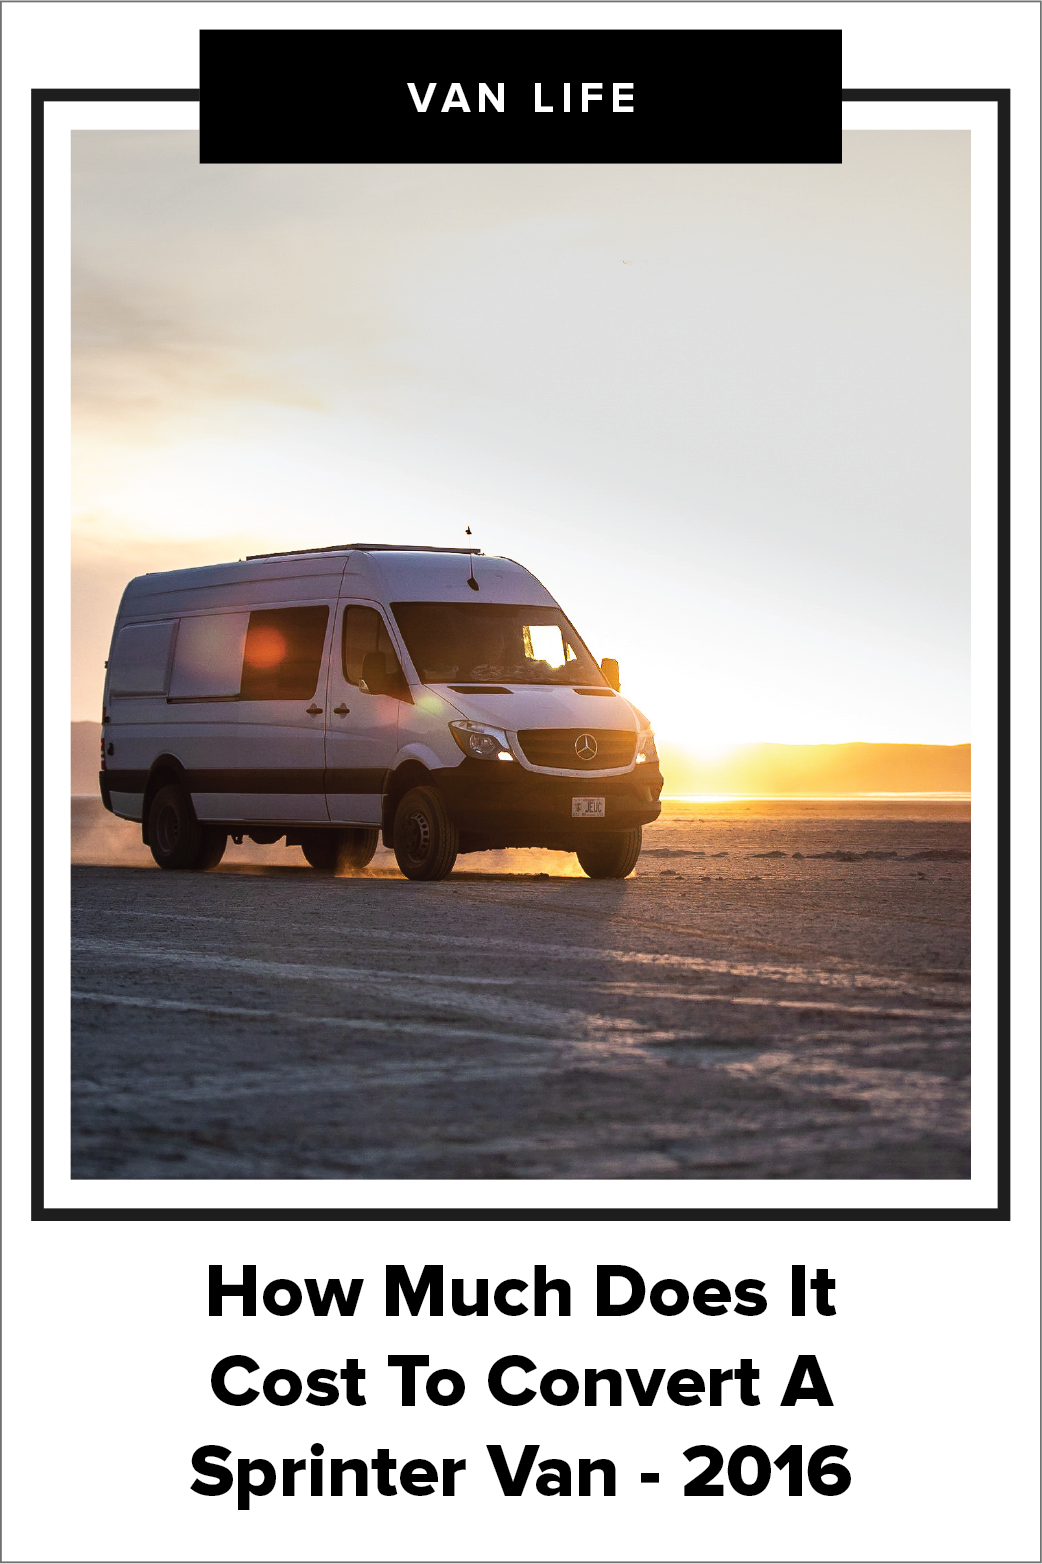 How Much Does It Cost To Convert A Sprinter Van - 2016